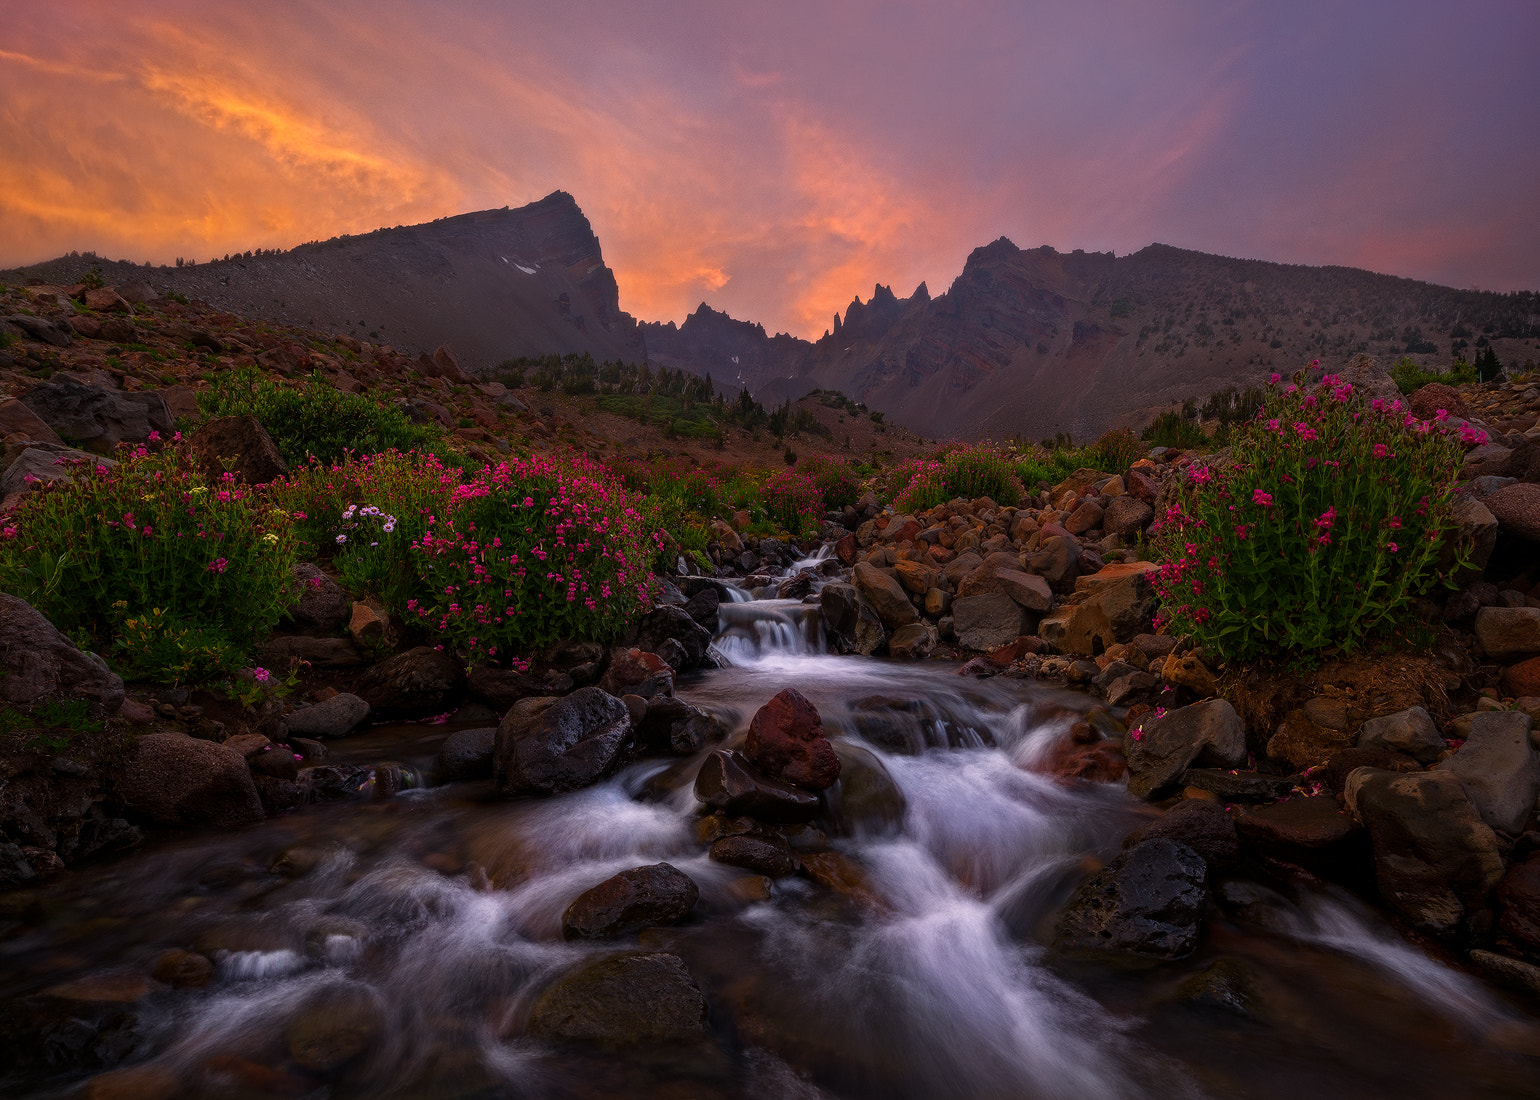 Photograph Confusion Ridge by Miles Morgan on 500px